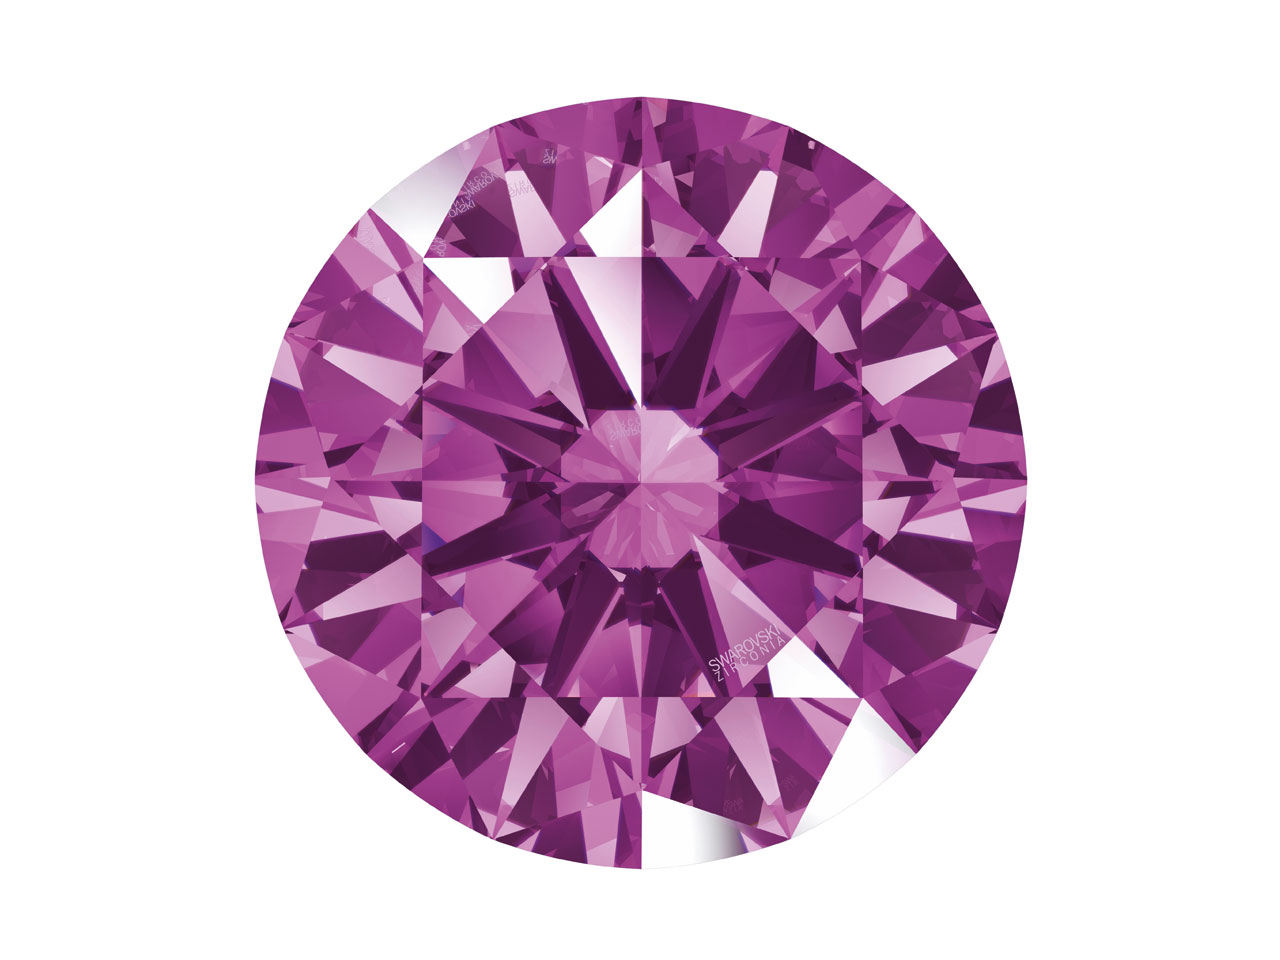 Swarovski Zirconia Round           Pure Brilliance Cut 3.5mm Fancy    Purple